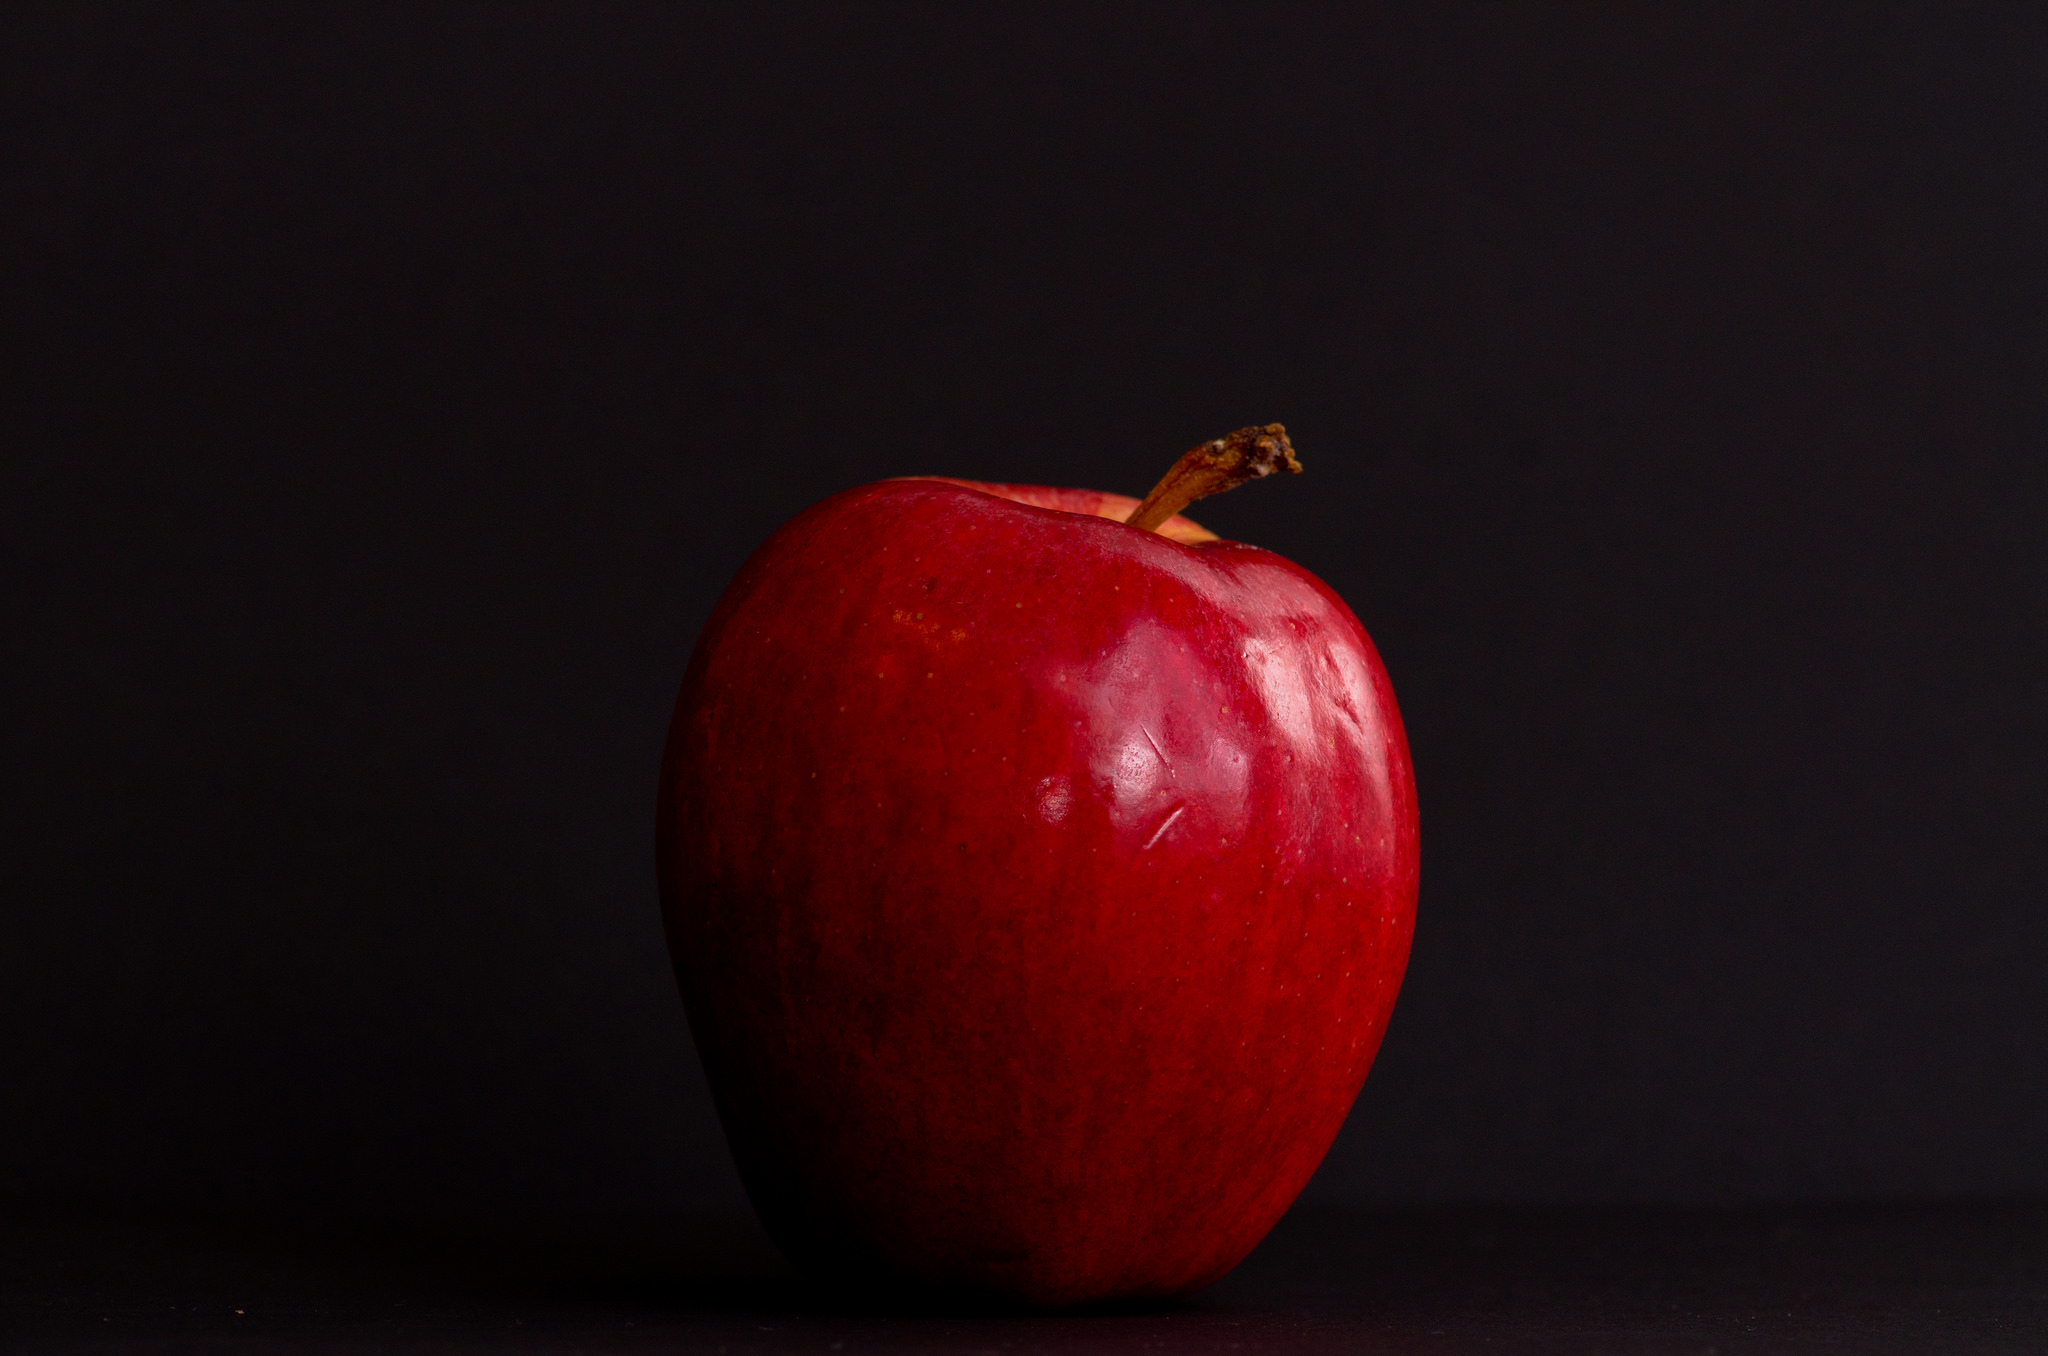 """Apple"" by KSI Photography, Flickr. Used according to Creative Commons license."